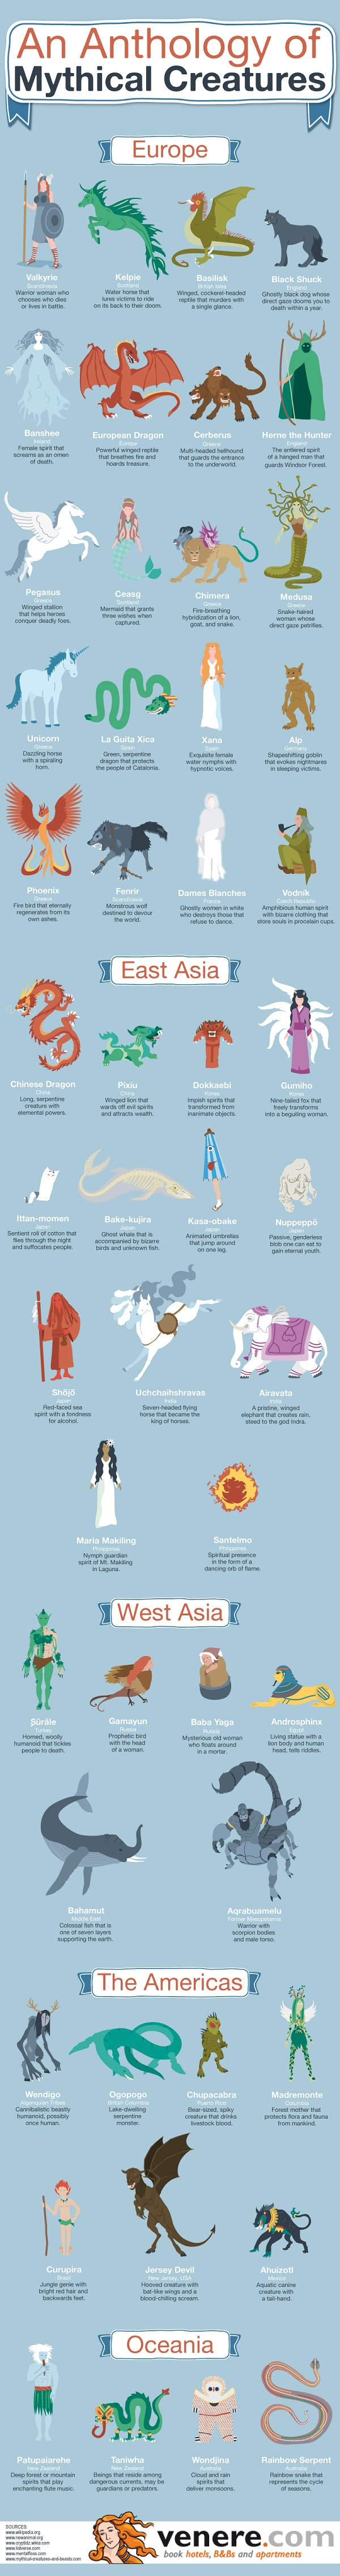 An Anthology of Mythical Creatures